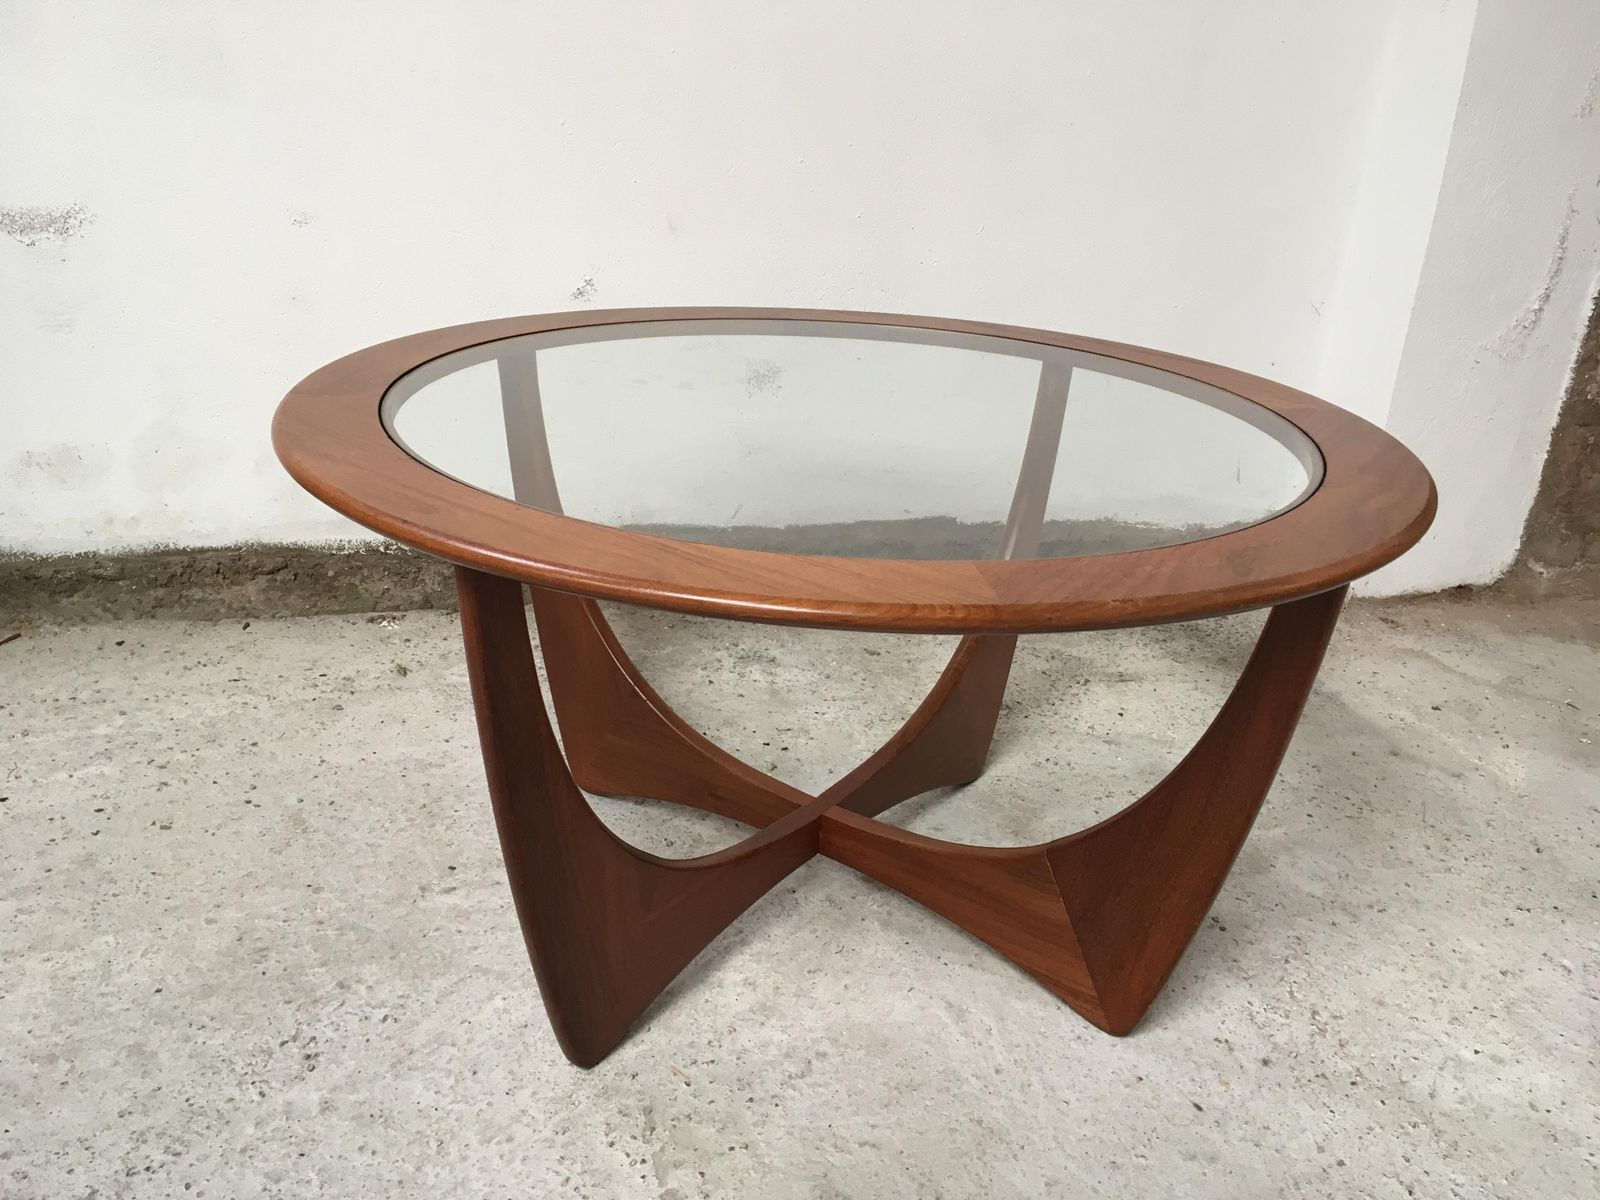 Astro round coffee table by victor wilkins for g plan 1960s for astro round coffee table by victor wilkins for g plan 1960s 10 123900 price per piece geotapseo Choice Image